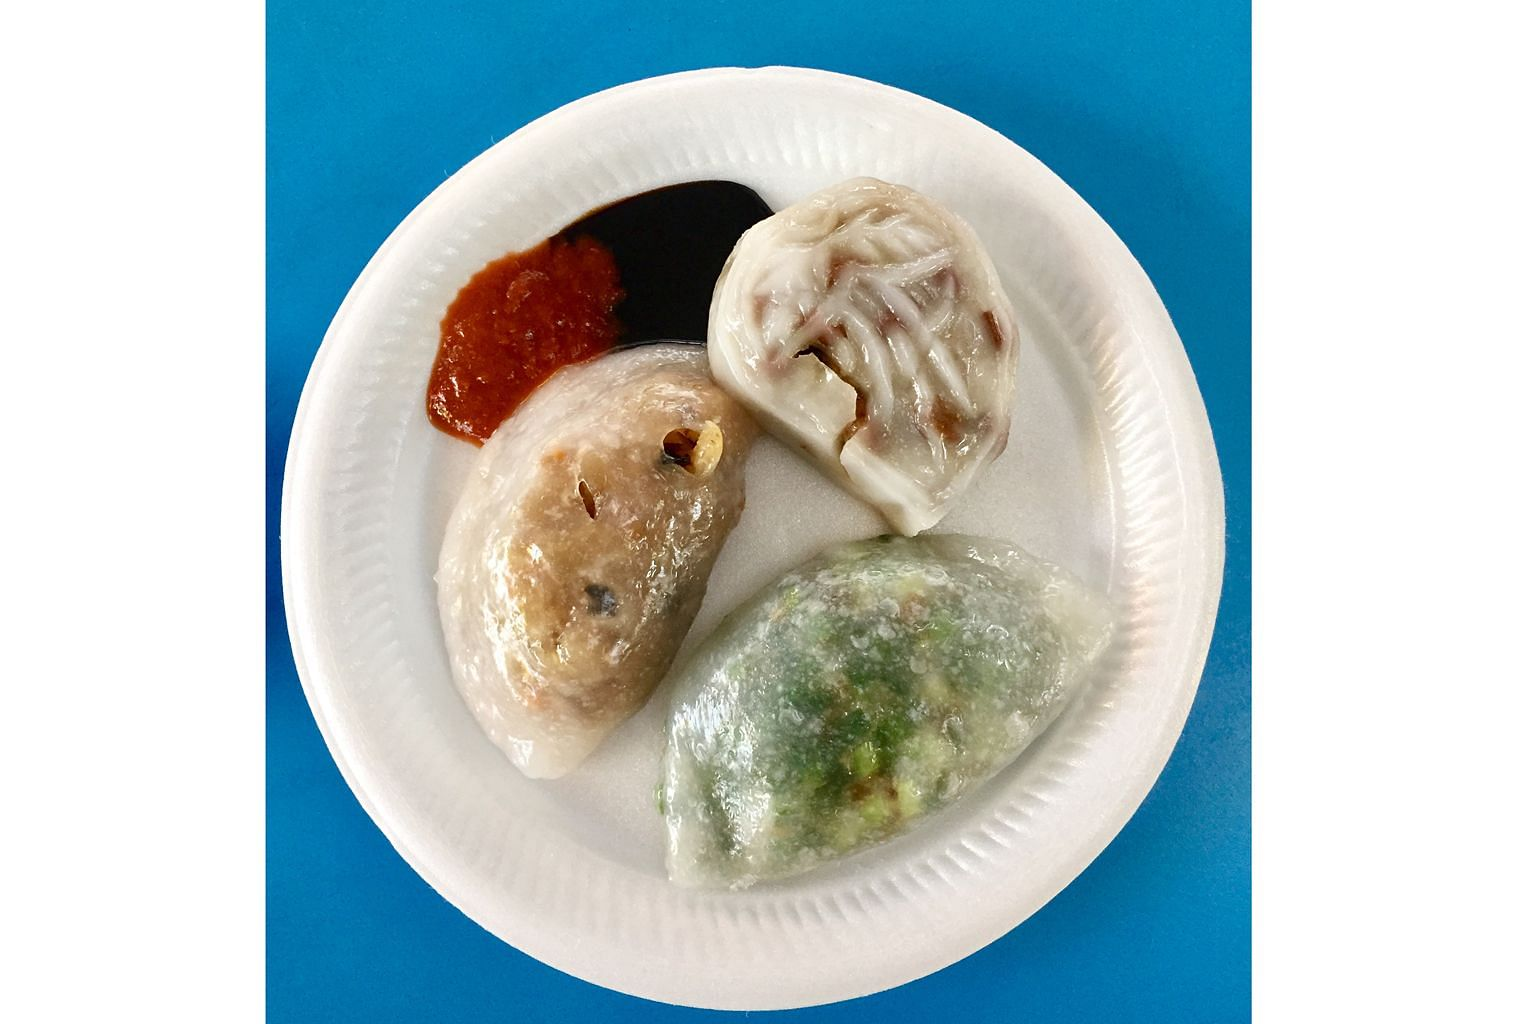 The three items are (clockwise from left) soon kueh, png kueh and koo chye kueh.